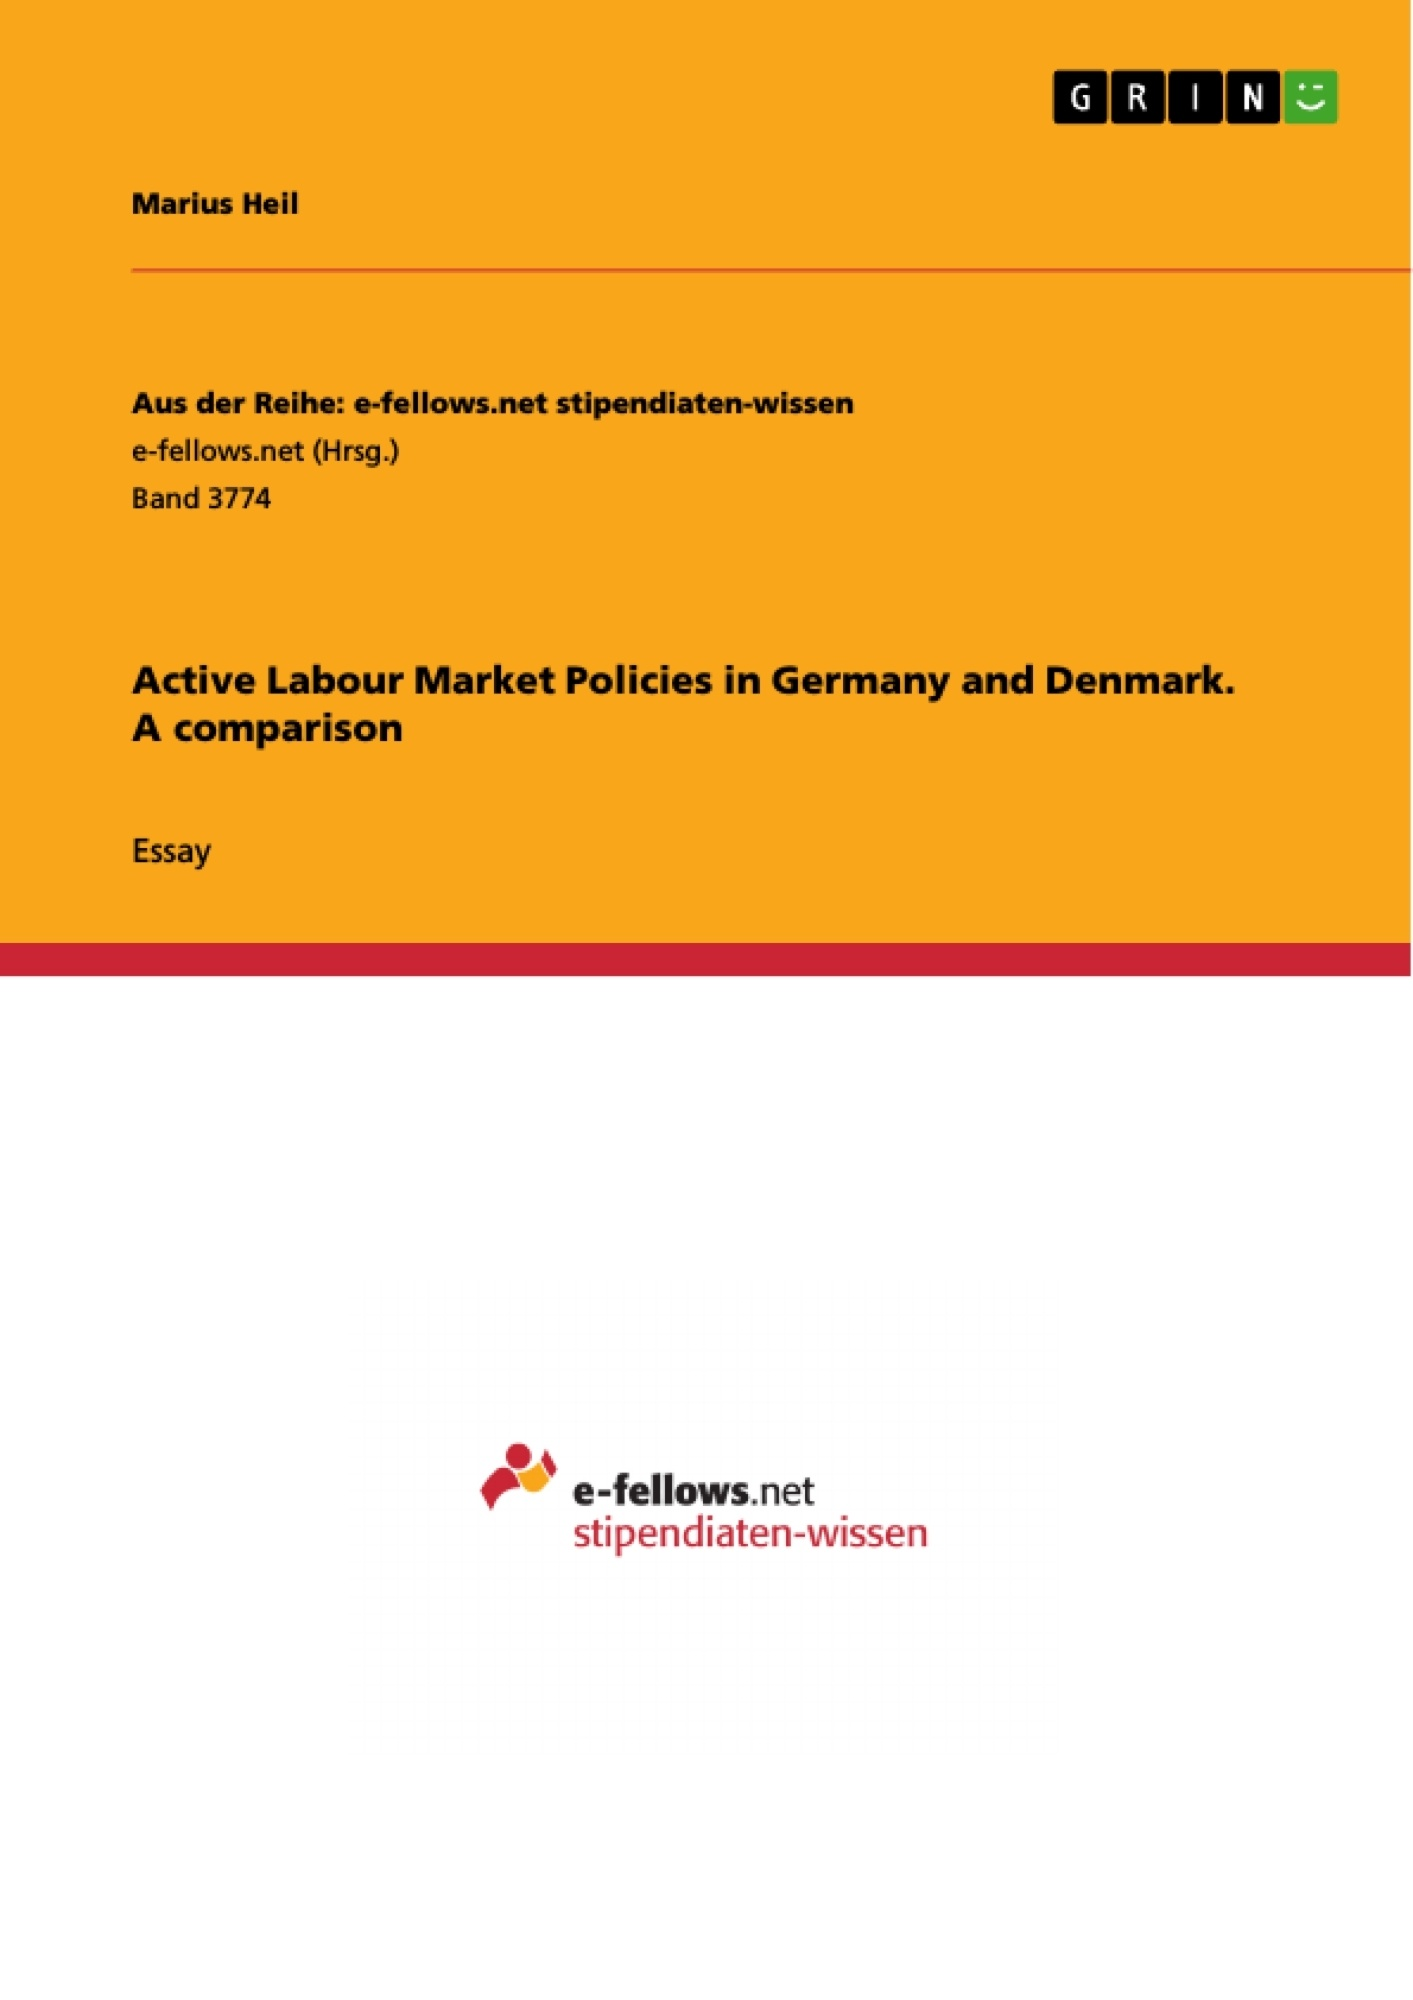 Title: Active Labour Market Policies in Germany and Denmark. A comparison